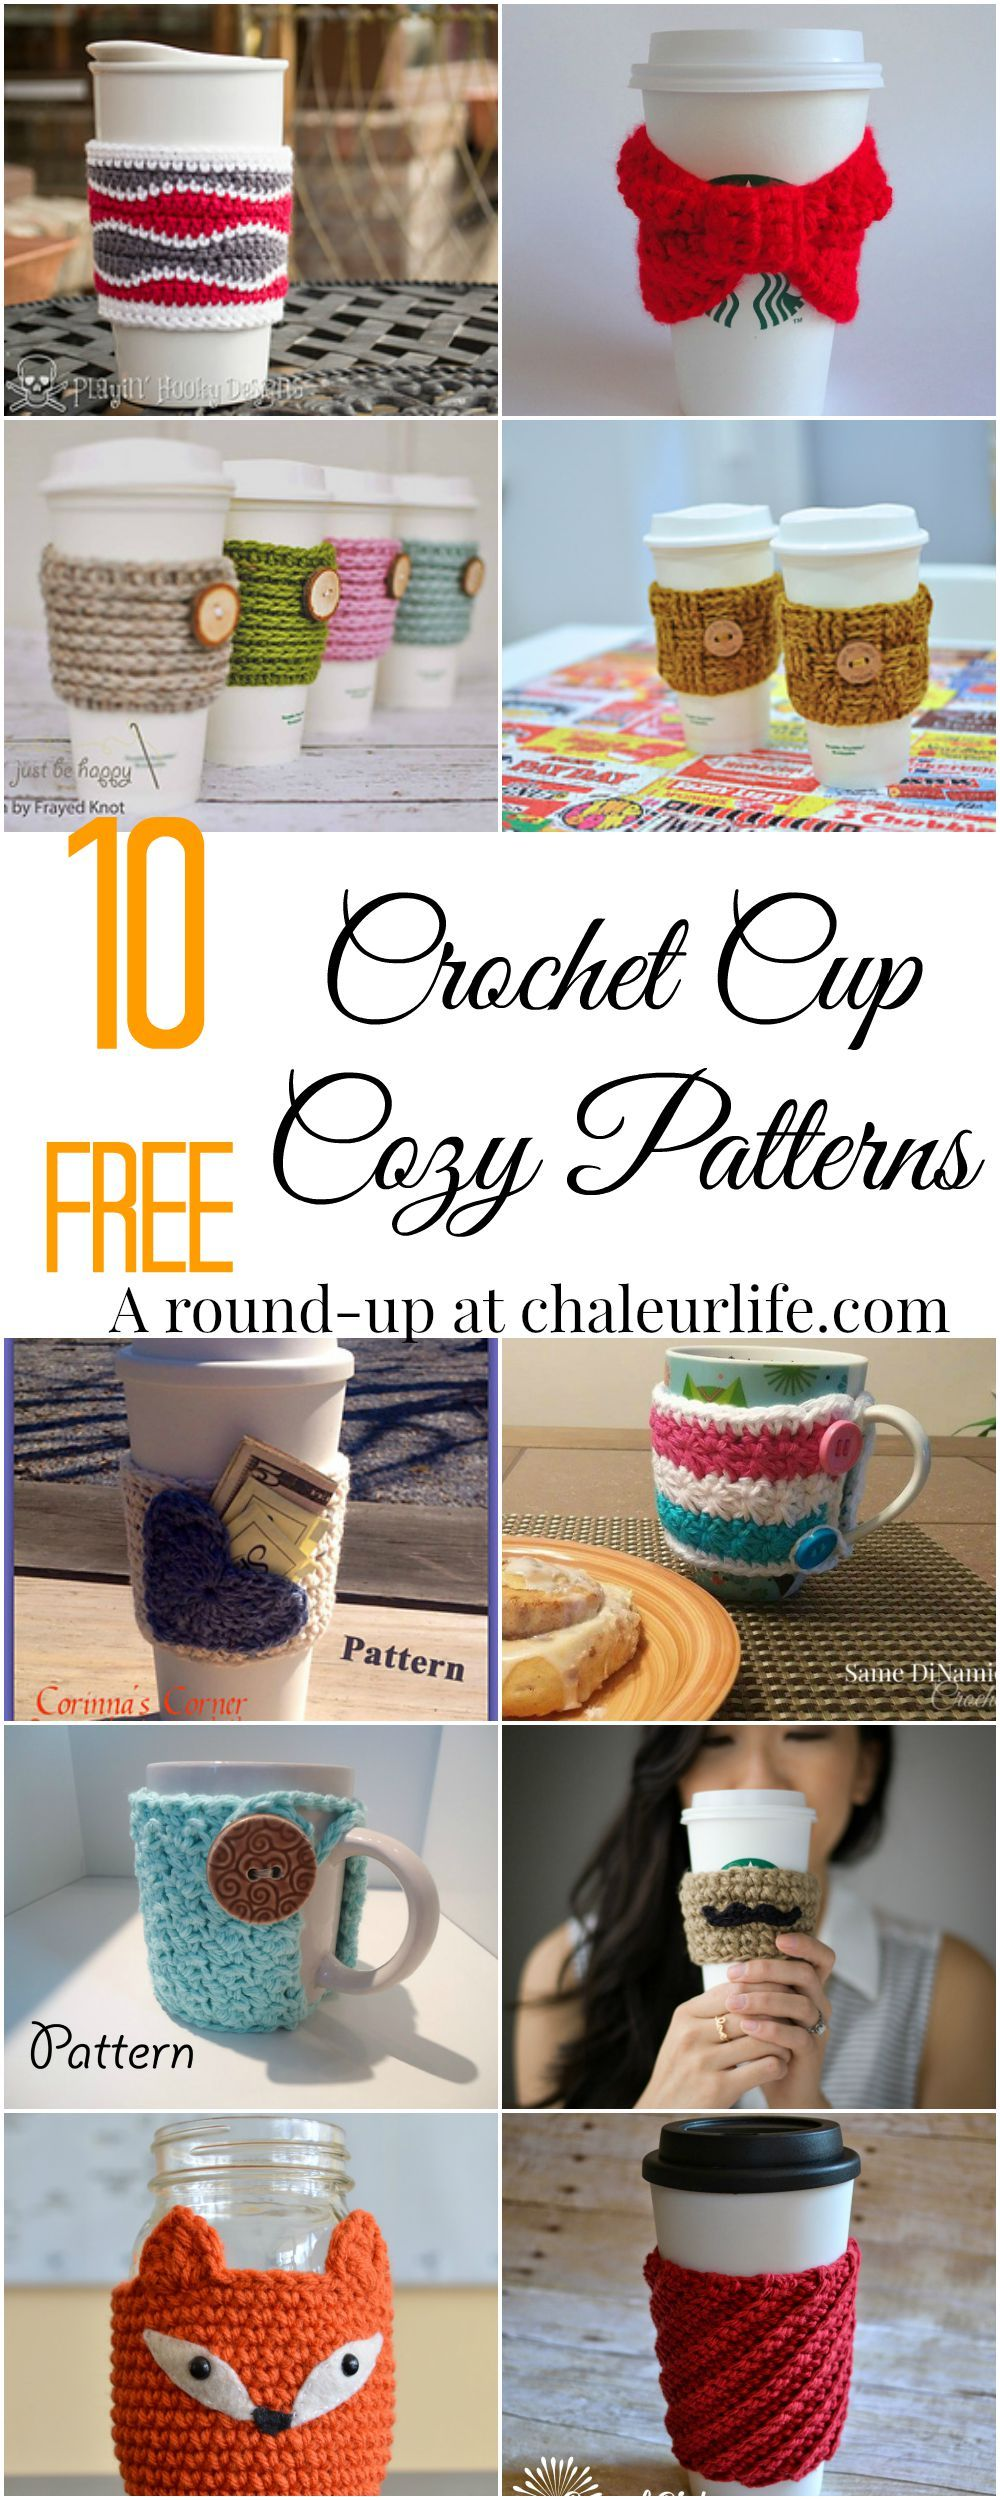 10 Free Crochet Cup Cozy Patterns Perfect For A Quick And Easy Diy